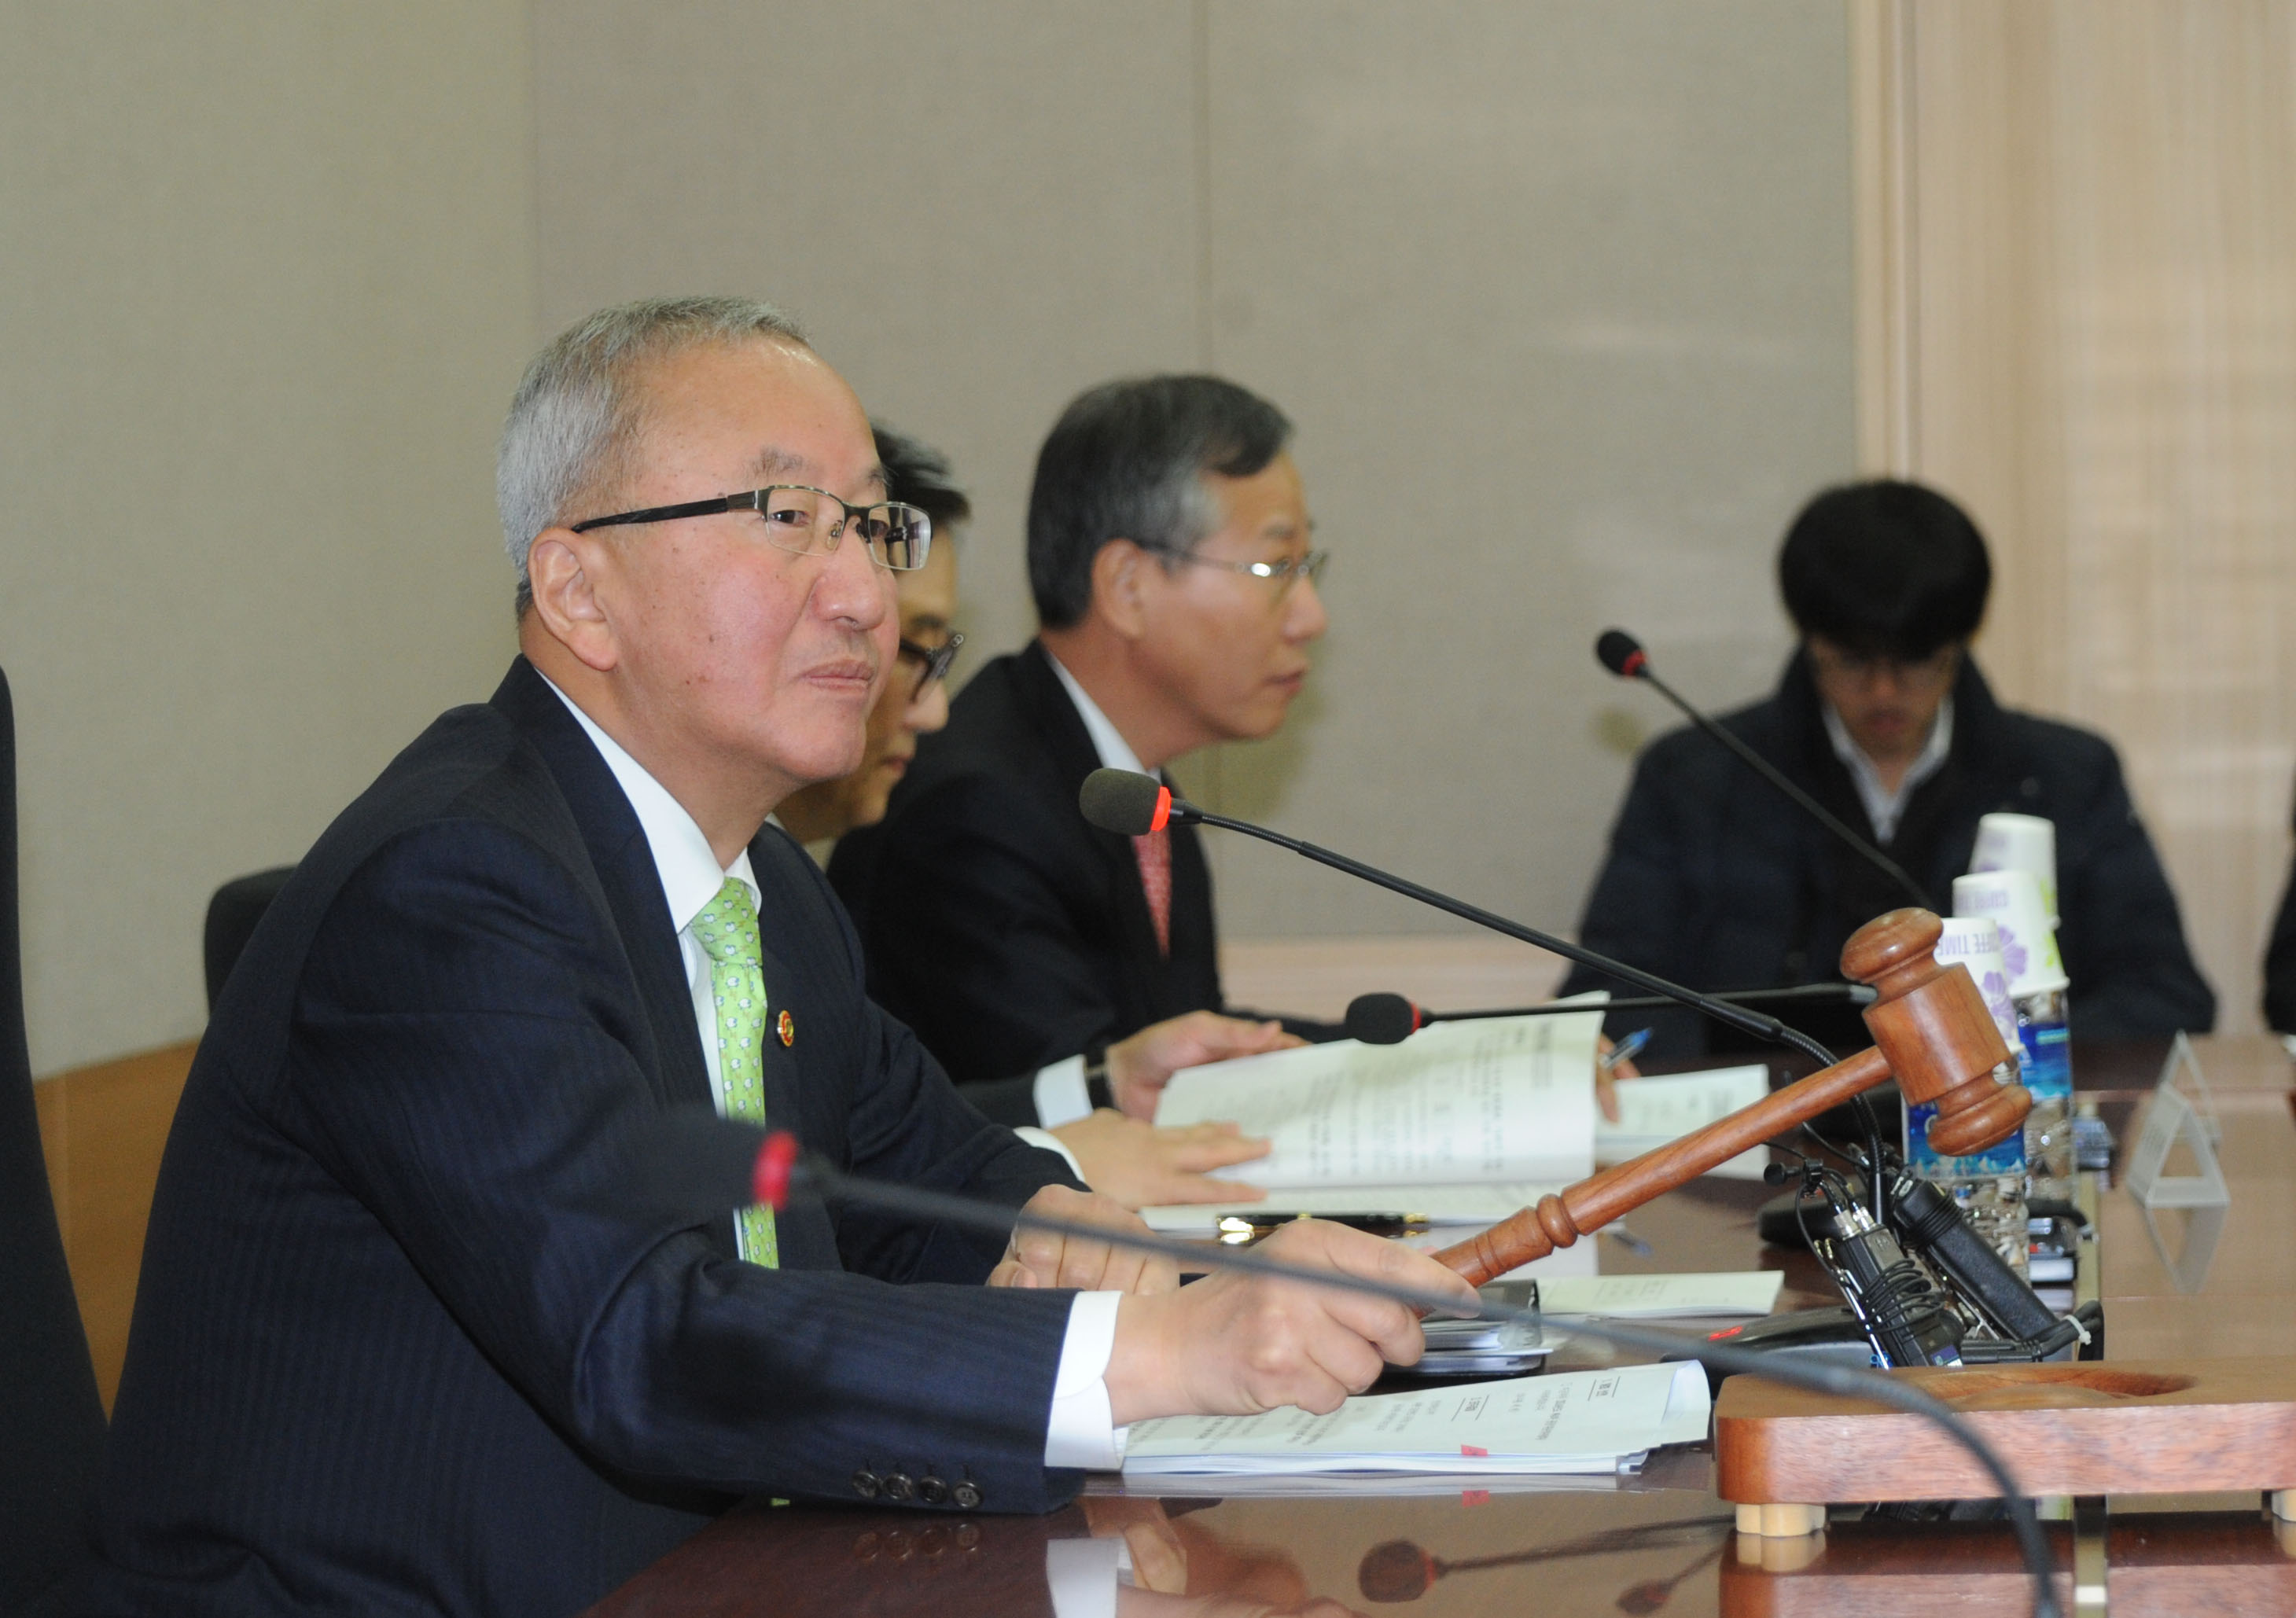 Deputy Prime Minister Hyun hosts the Public Institution Management Meeting